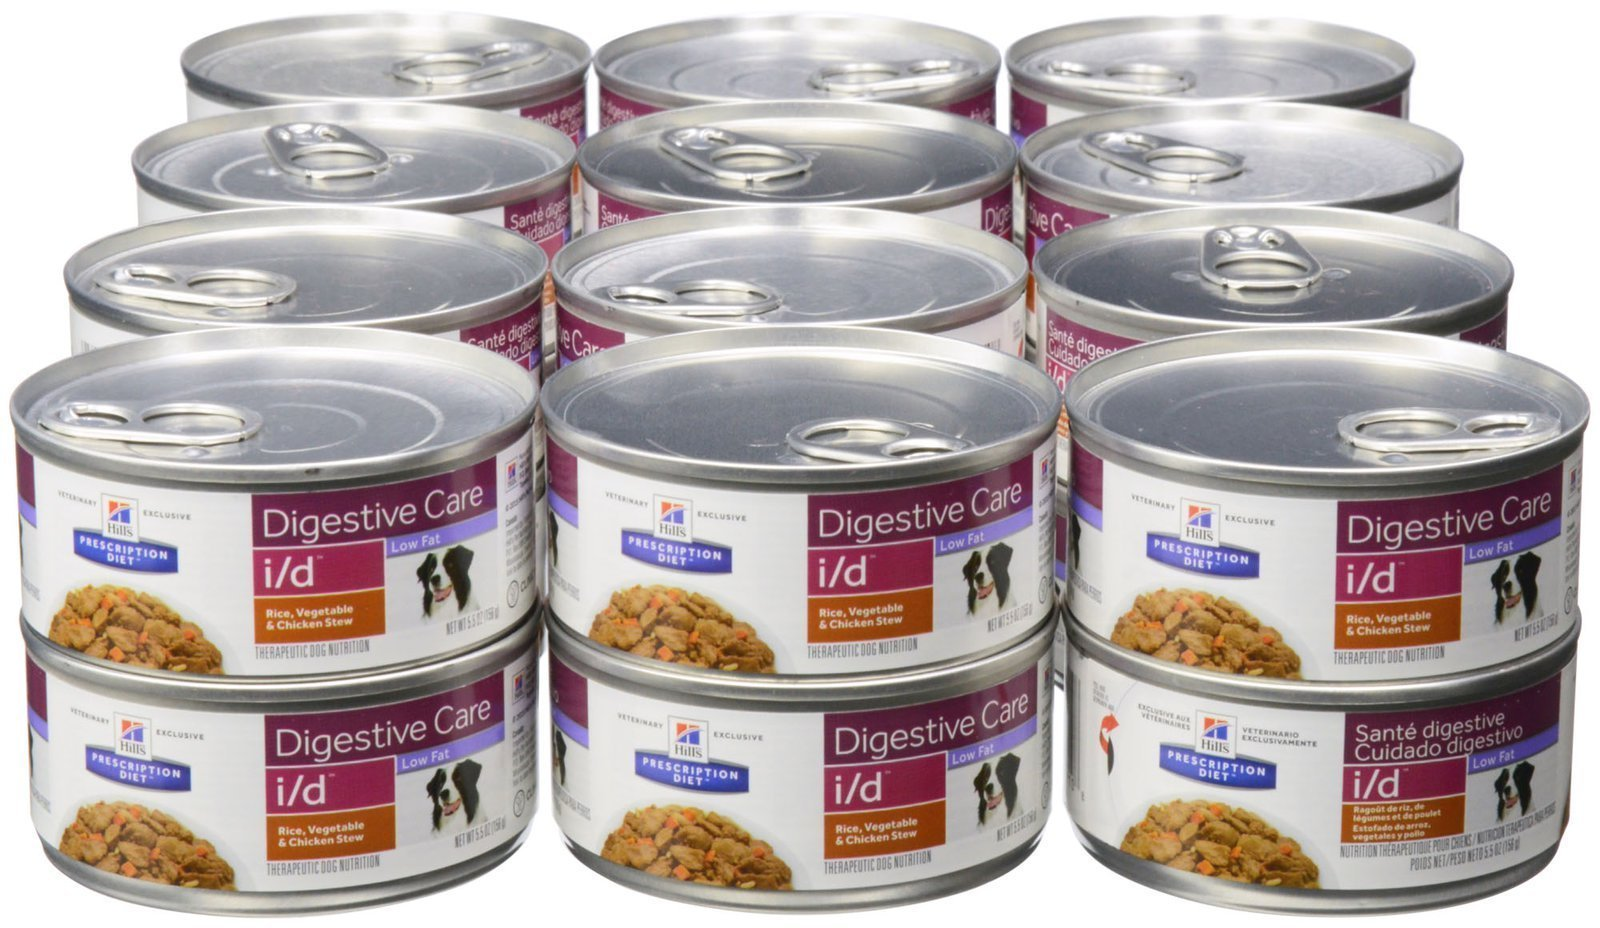 Hill's Prescription Diet i/d Canine Low Fat Gastrointestinal Restore - Rice, Vegetable & Chicken Stew - 24x5.5oz